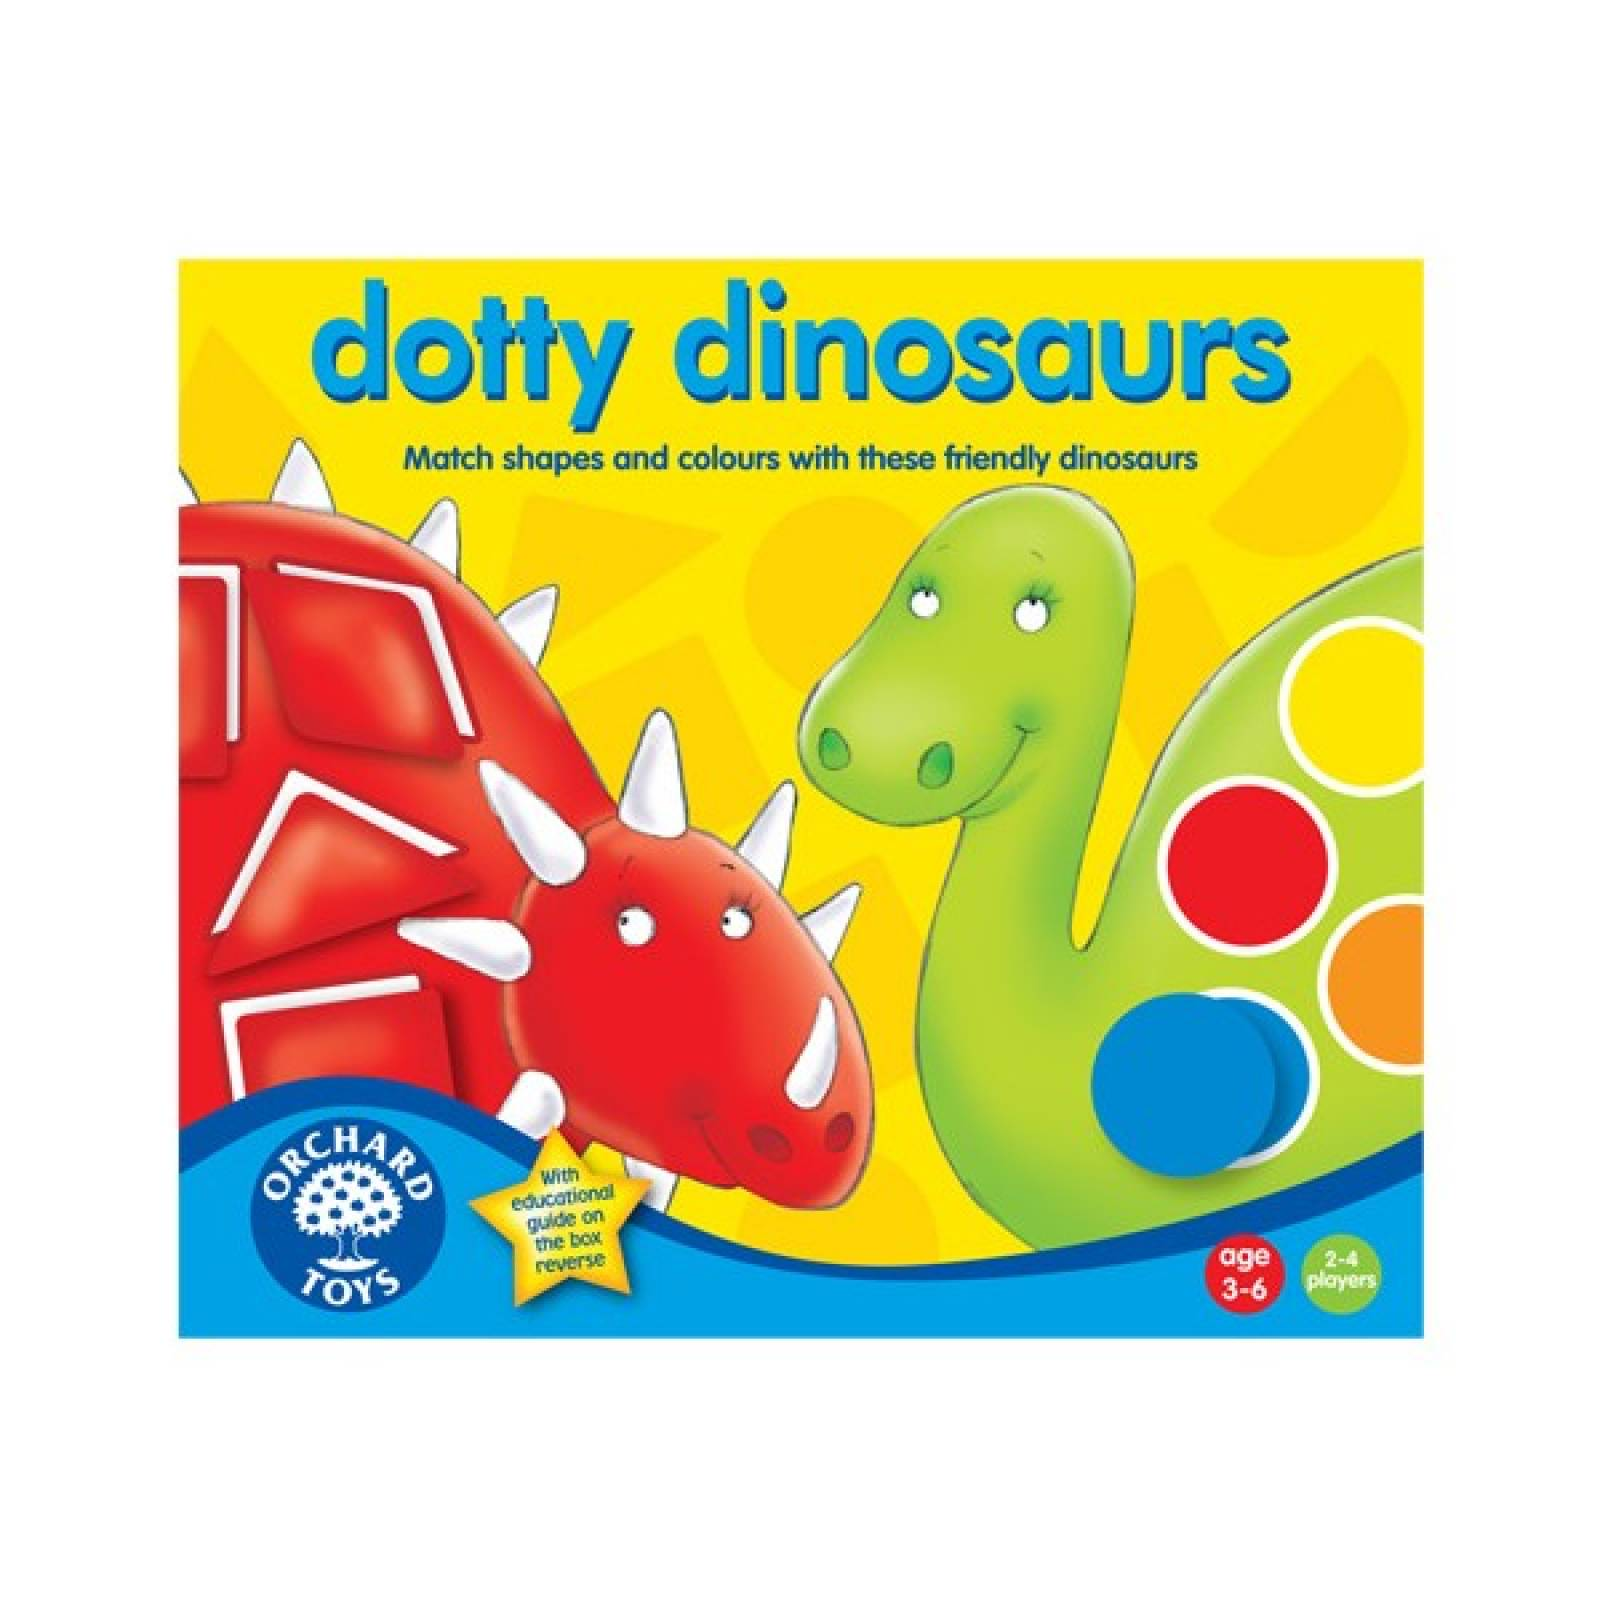 Dotty Dinosaur Game By Orchard Toys 3-6yrs thumbnails